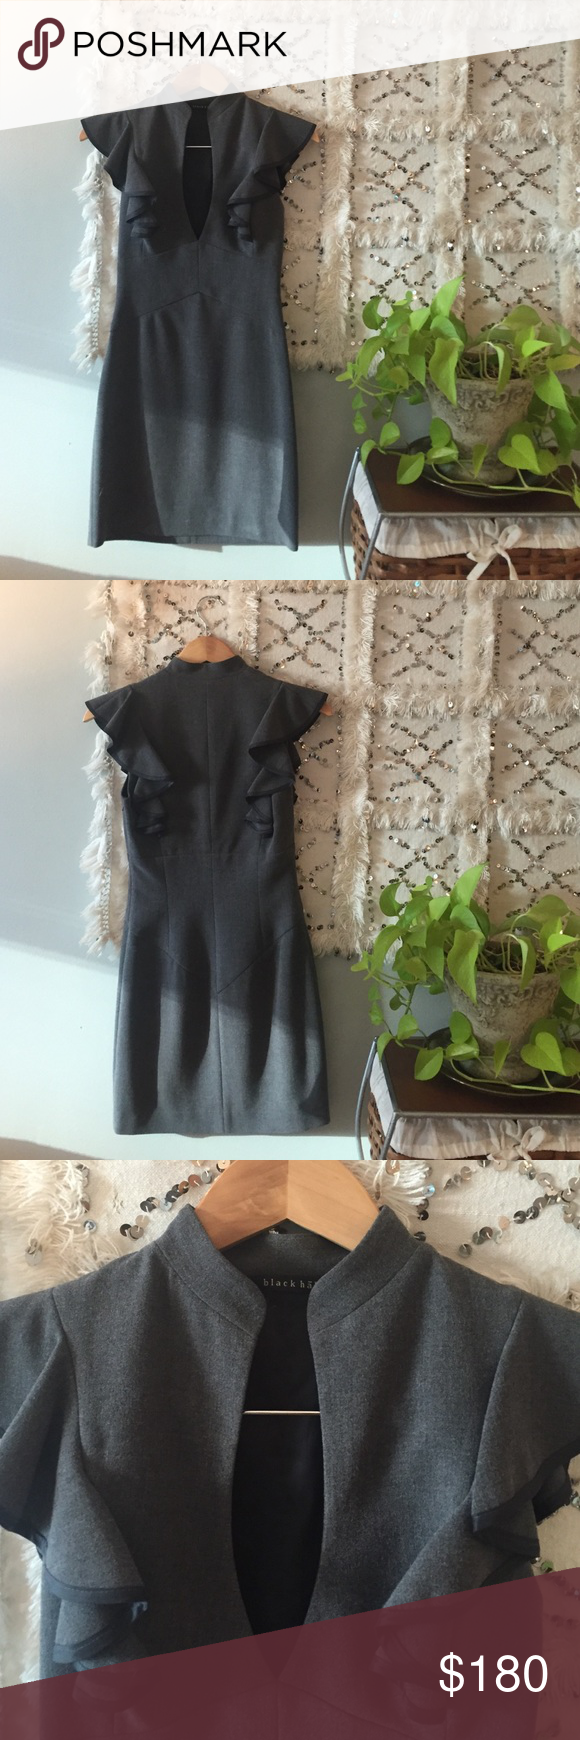 Black Halo Designer Dress Black Halo Designer Dress.  Fits a true size 0 and would be doable for a 00 but meant to fit snug! Black Halo Dresses